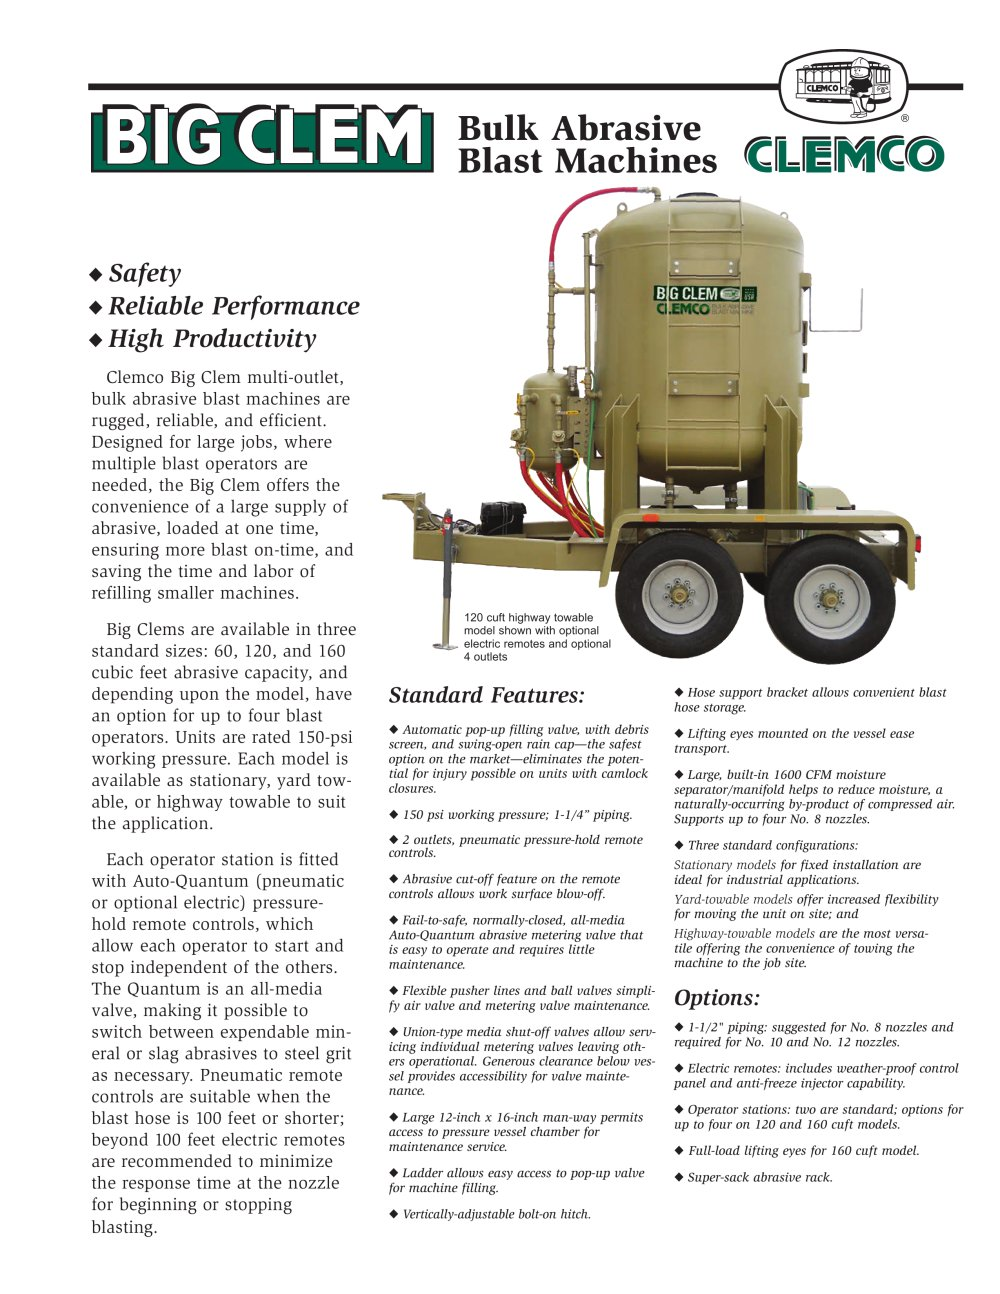 Clemco Industries Blast Cabinets